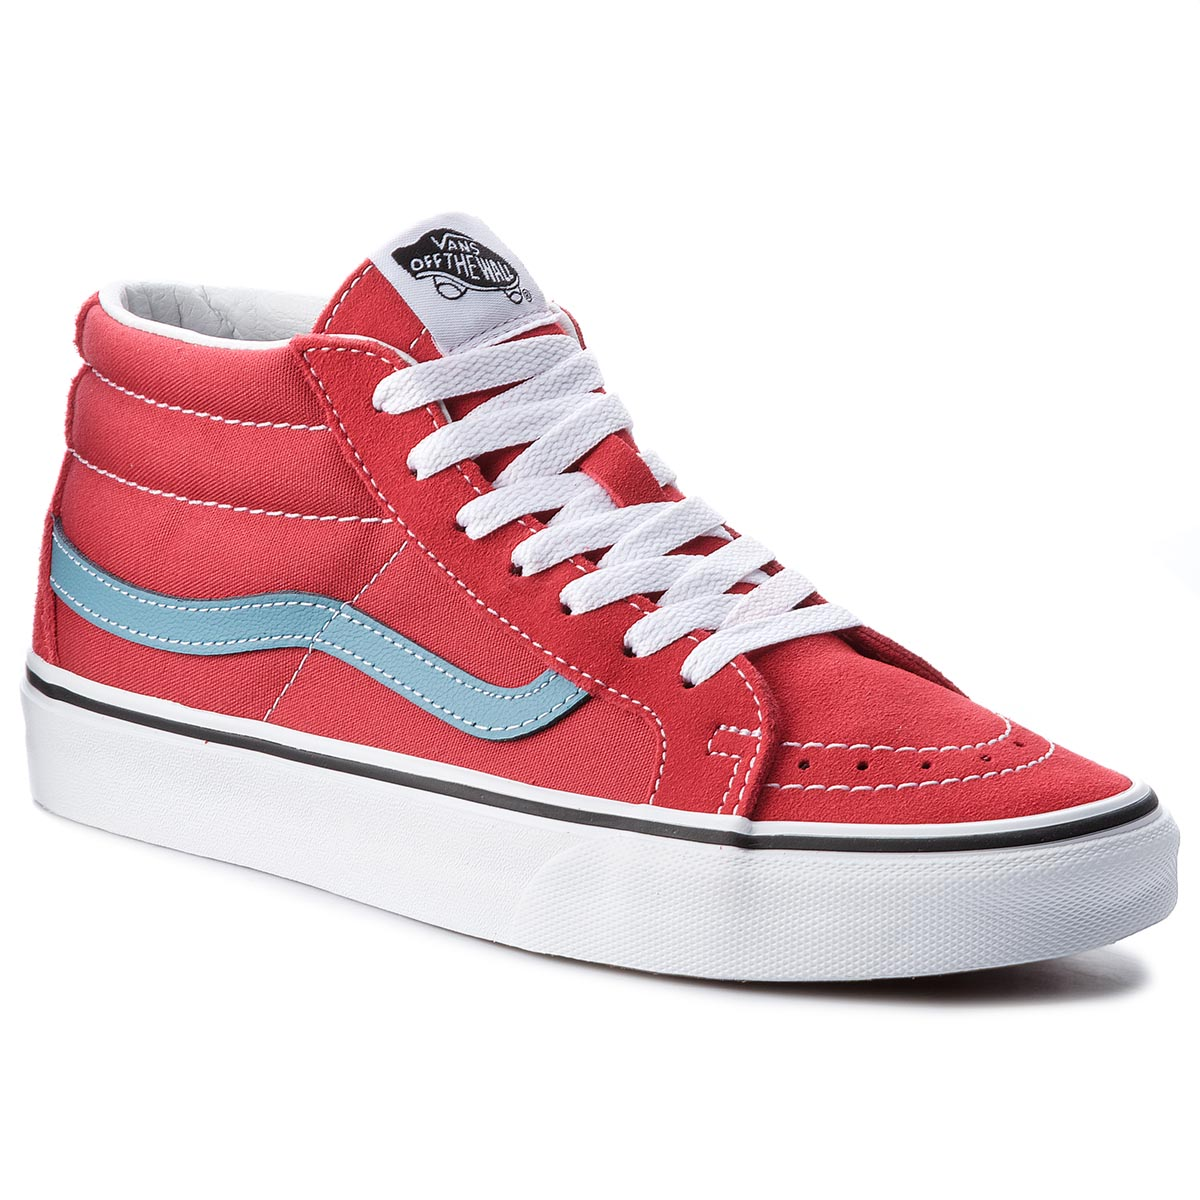 Sneakers VANS - Sk8-Mid Reissure VN0A3MV8Q8C Rococco Red/Adriatic Blue